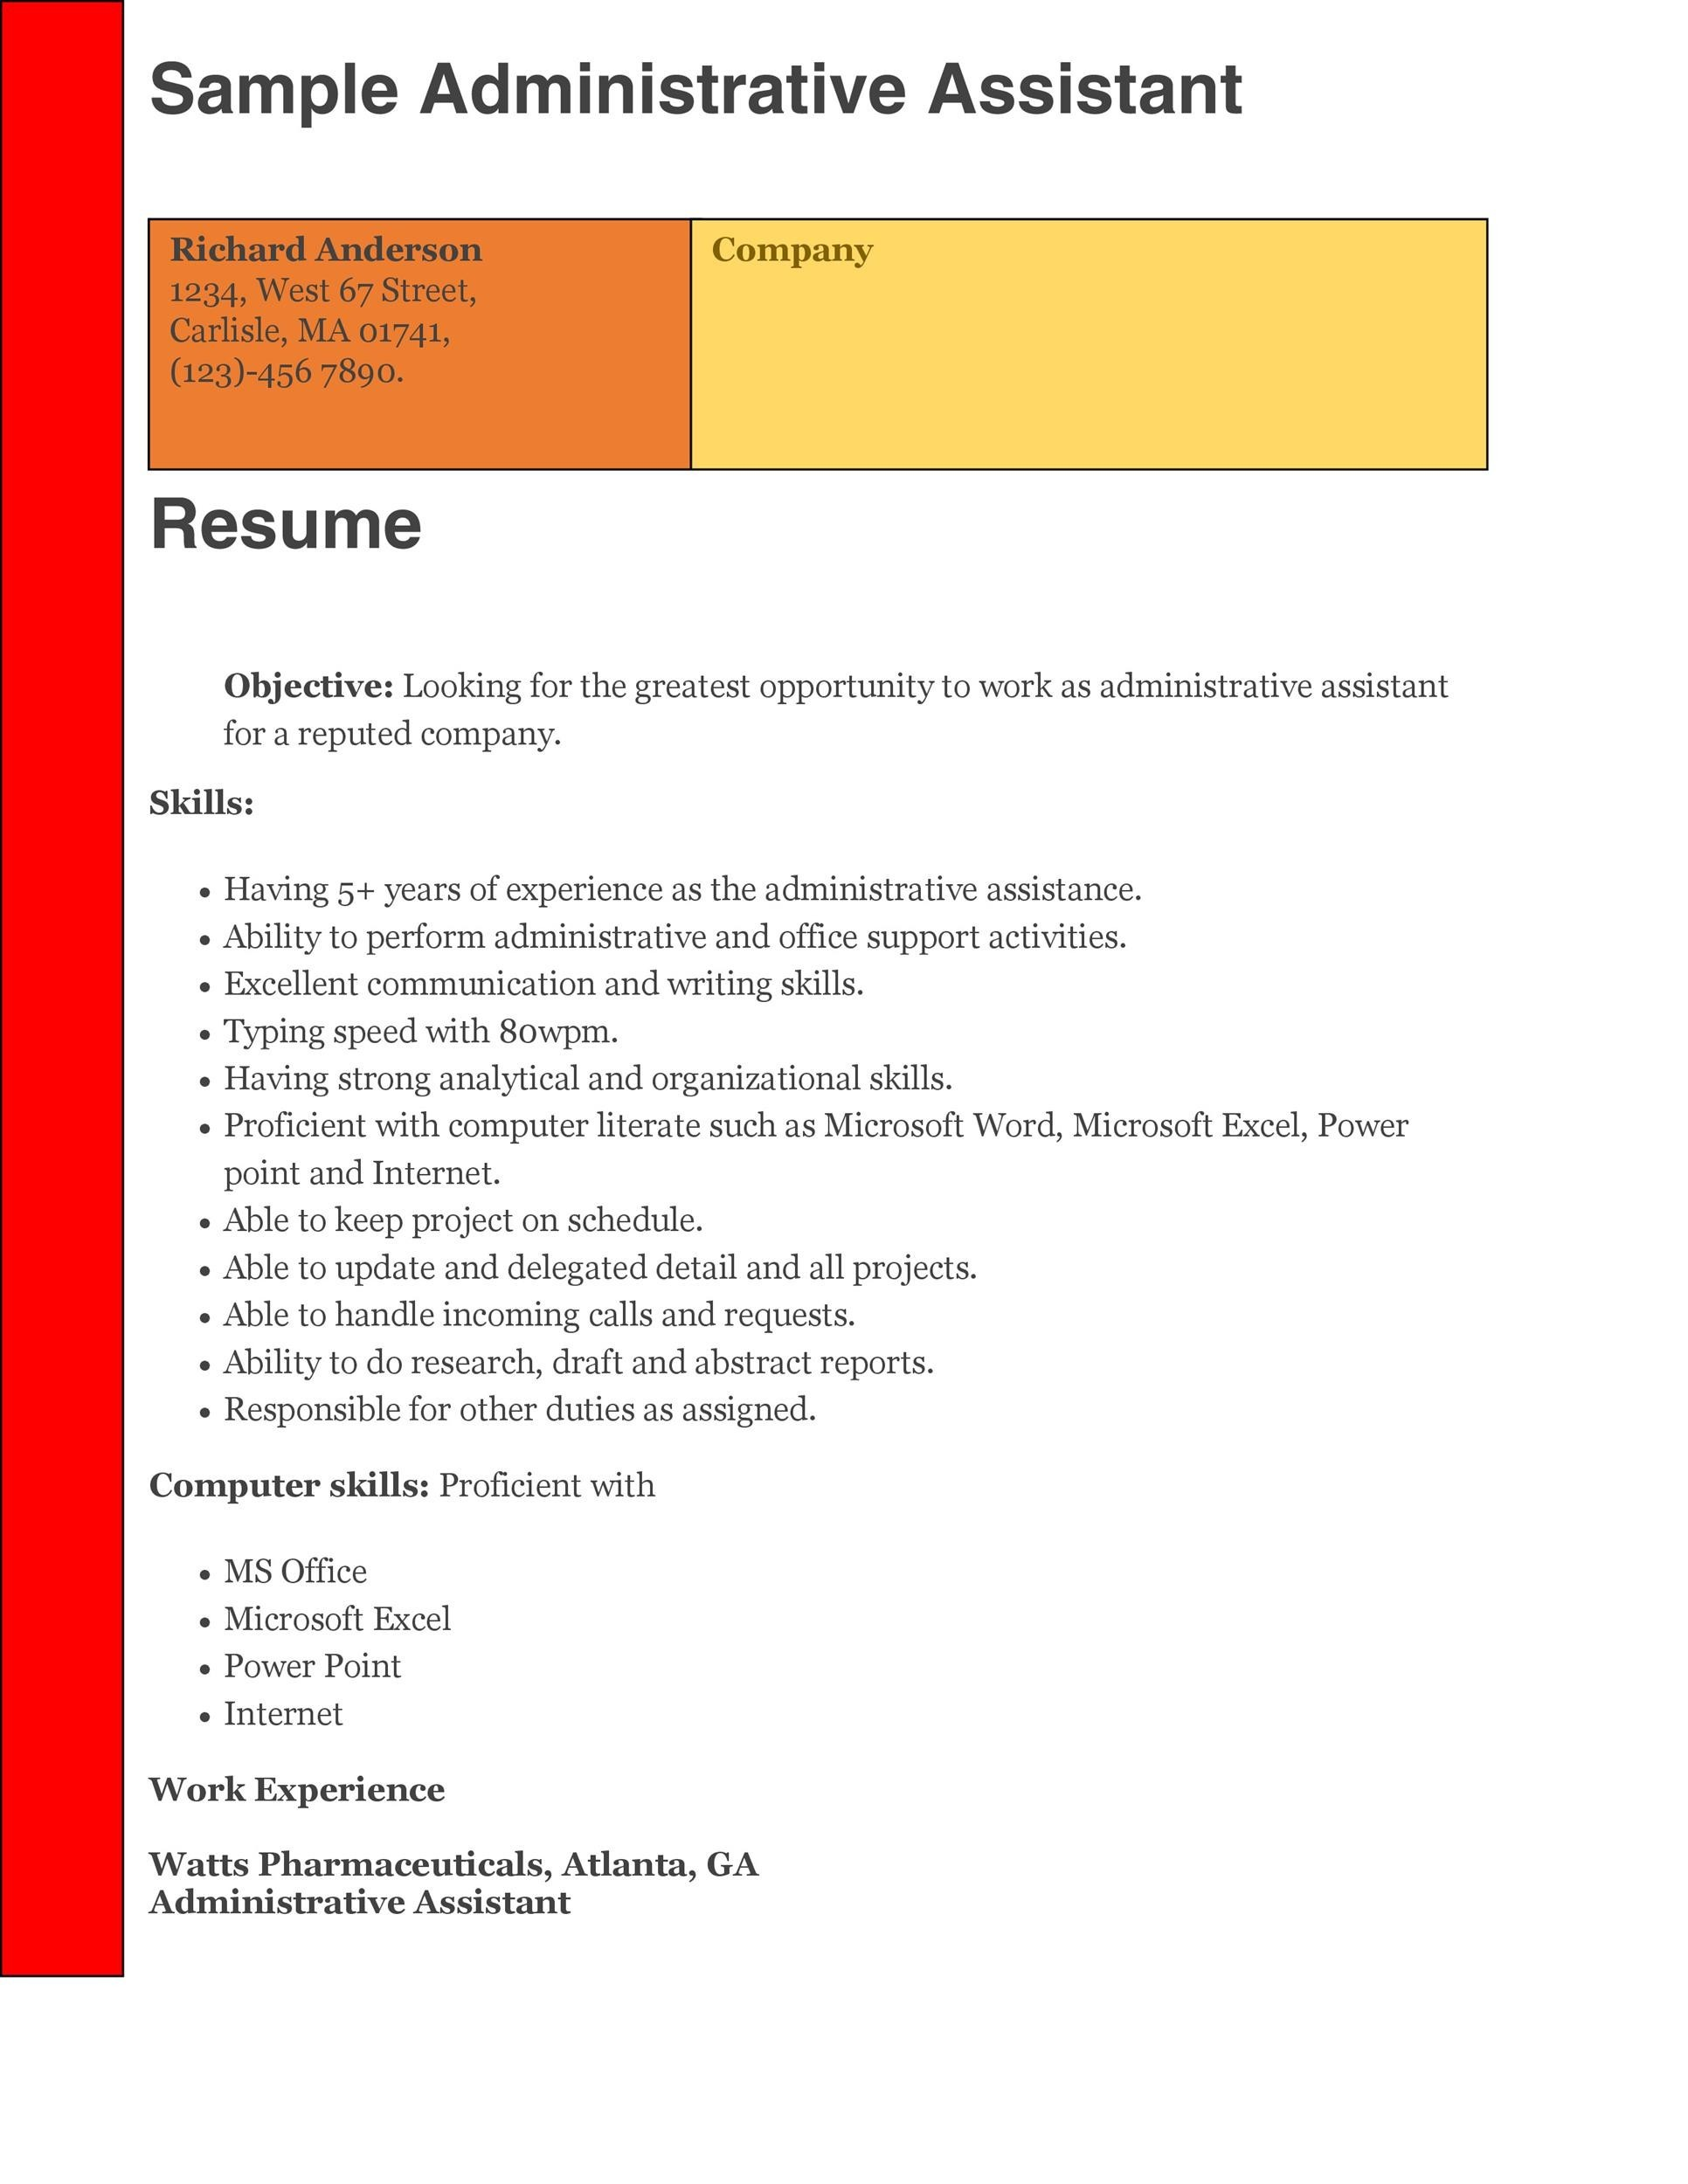 resume template google docs reddit pdf australia templates word download administrative assistant